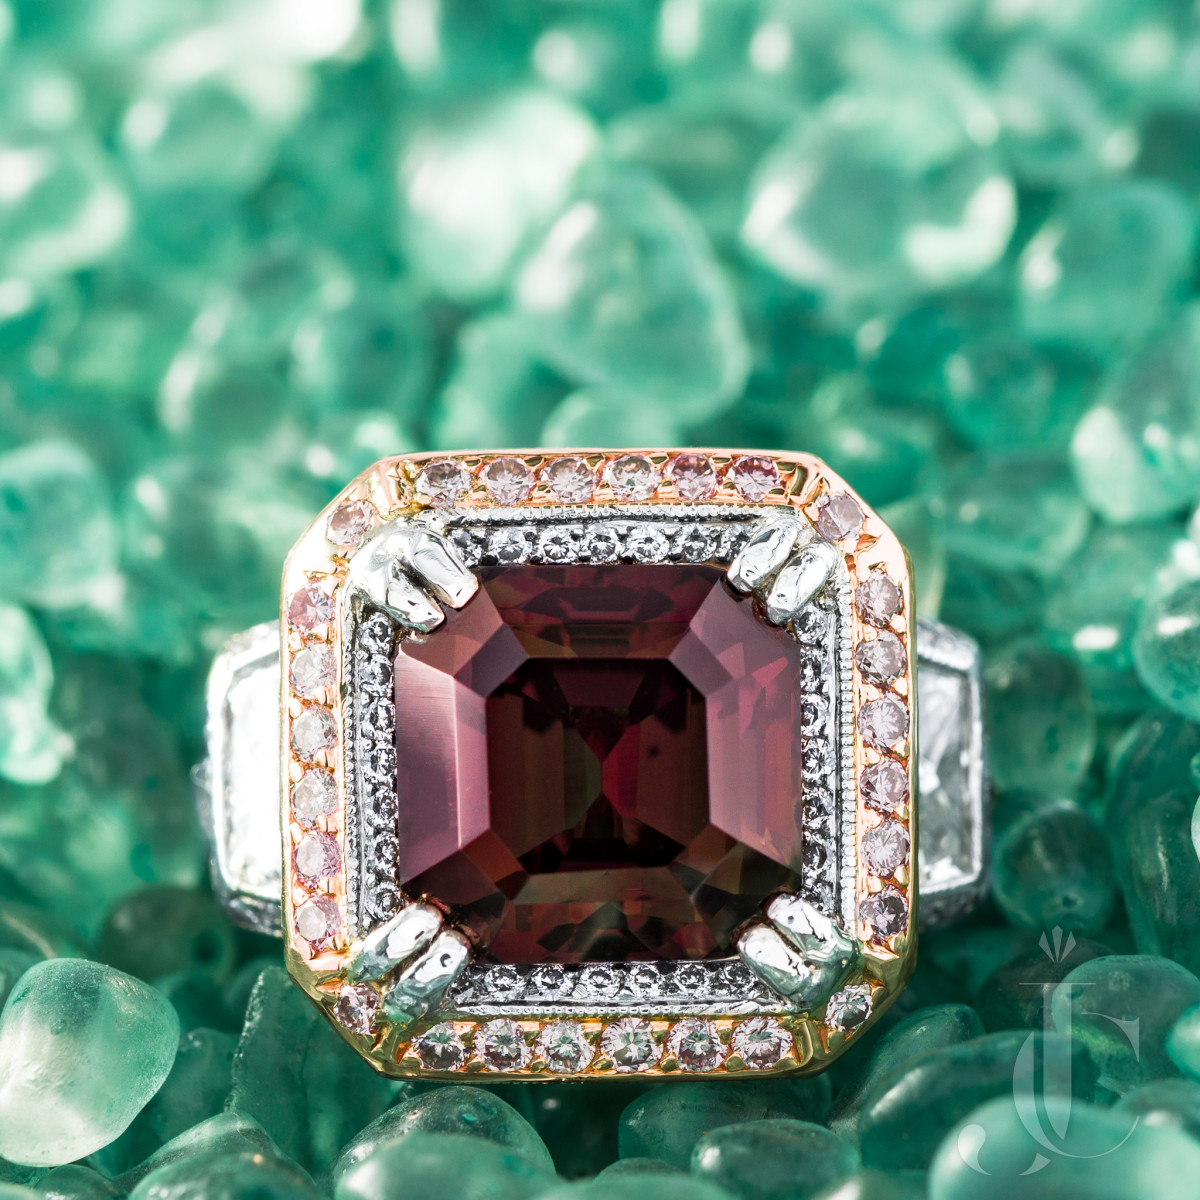 6.94 Carat Alexandrite Ring with Pink and White Diamonds